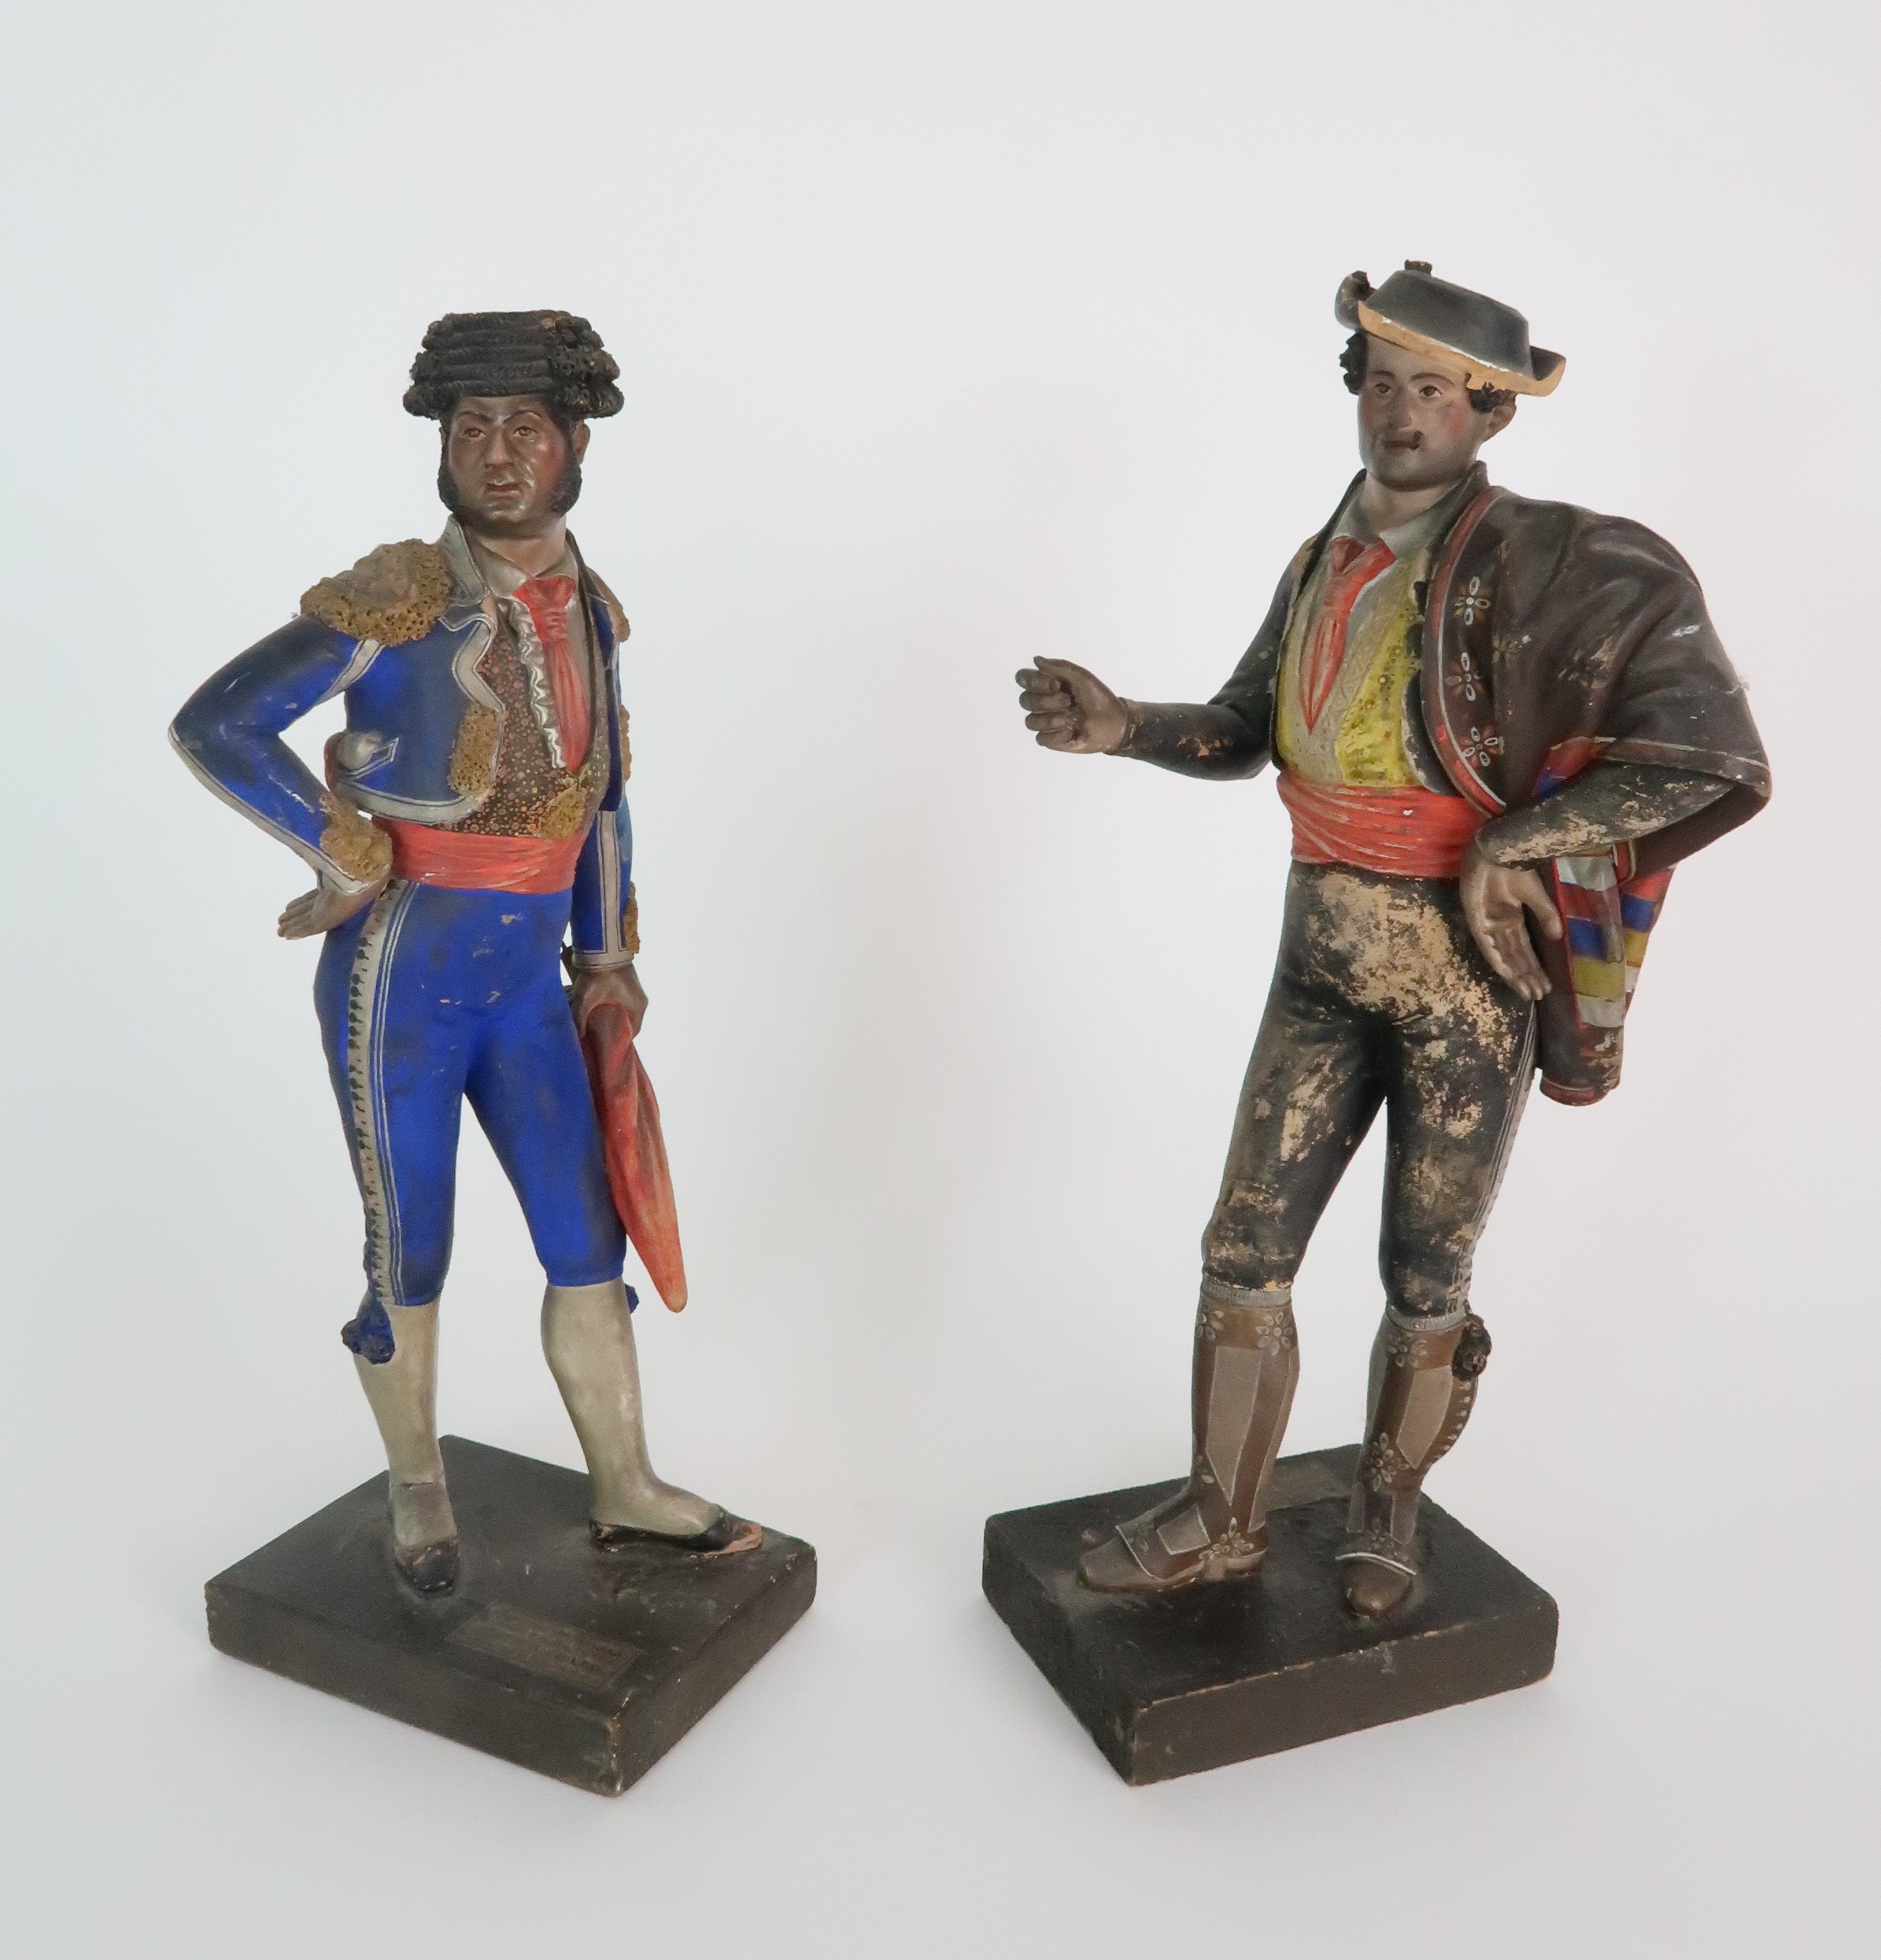 JOSE CUBERO, MALAGA - A PAIR OF MID 19TH CENTURY COLD PAINTED TERRACOTTA FIGURES one a matador,